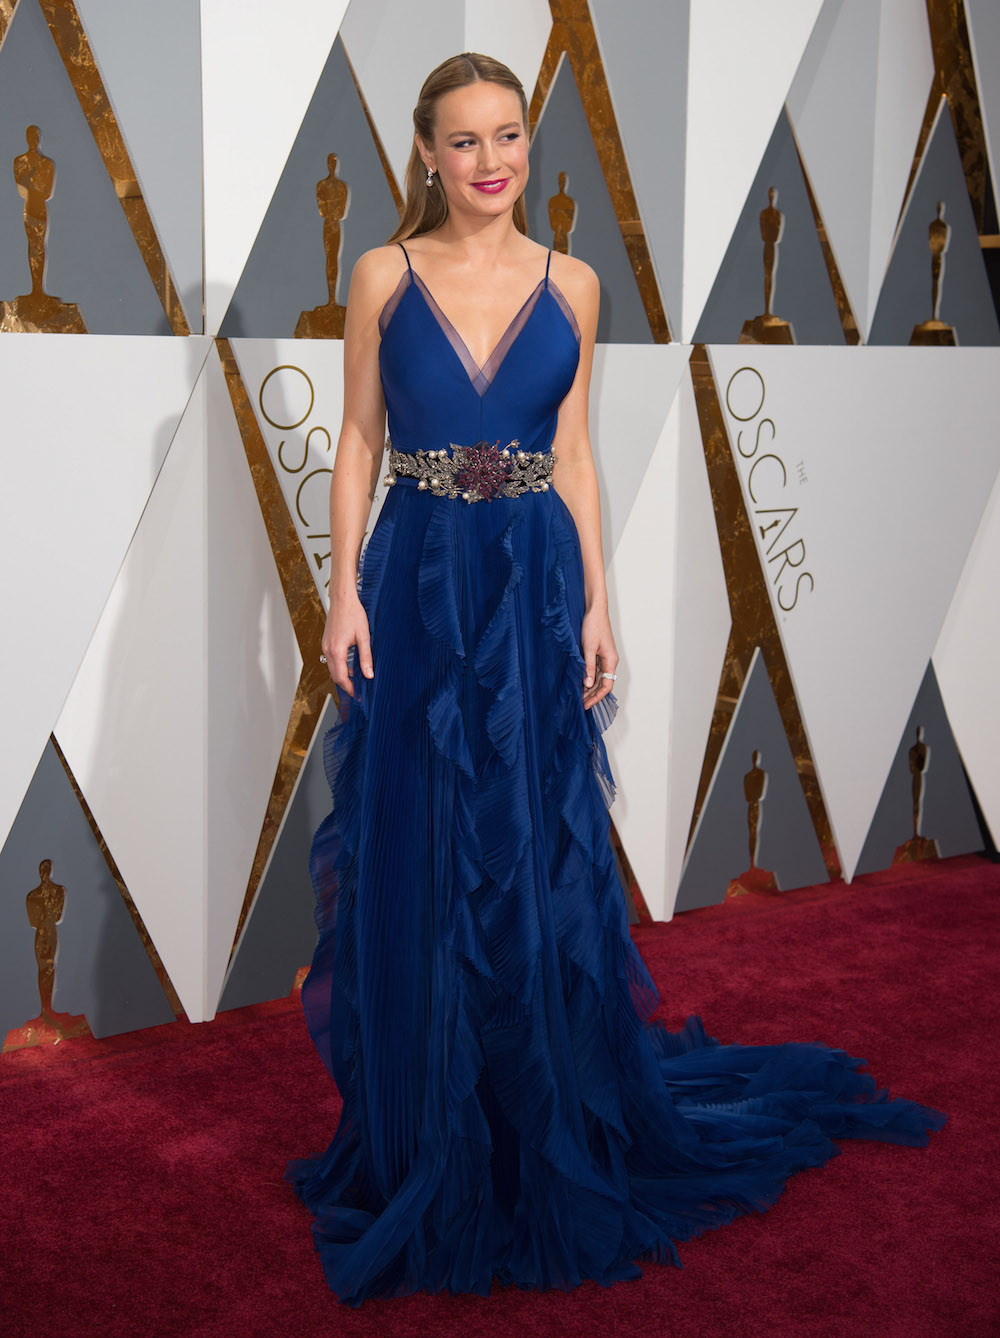 brie larson oscars 2016 dress kleid gucci modepilot